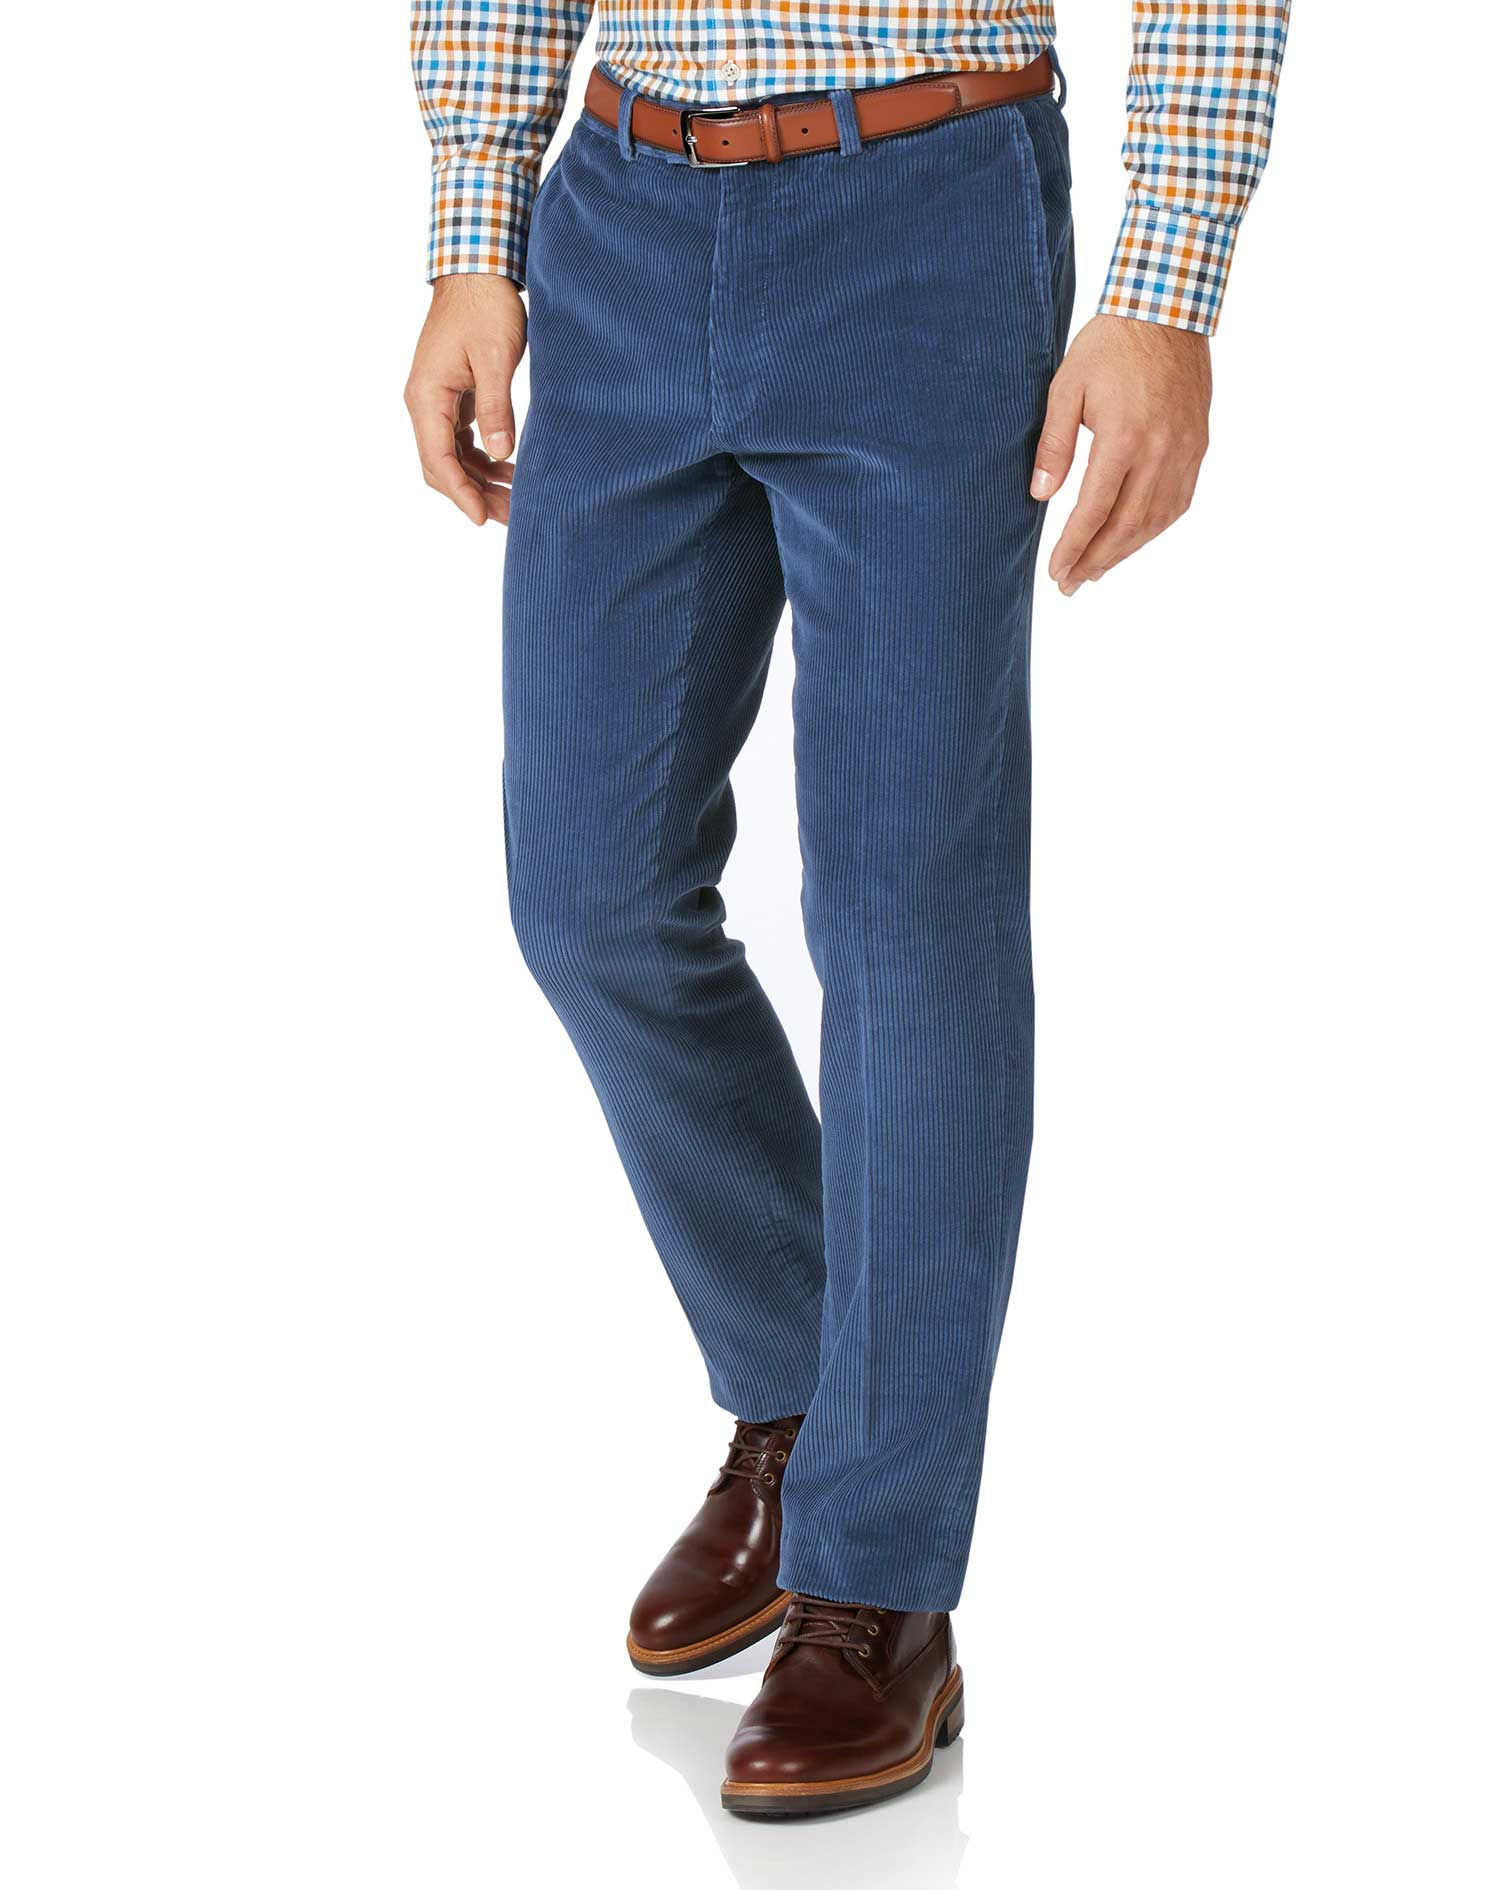 Airforce Blue Classic Fit Jumbo Corduroy Trousers Size W34 L34 by Charles Tyrwhitt from Charles Tyrwhitt